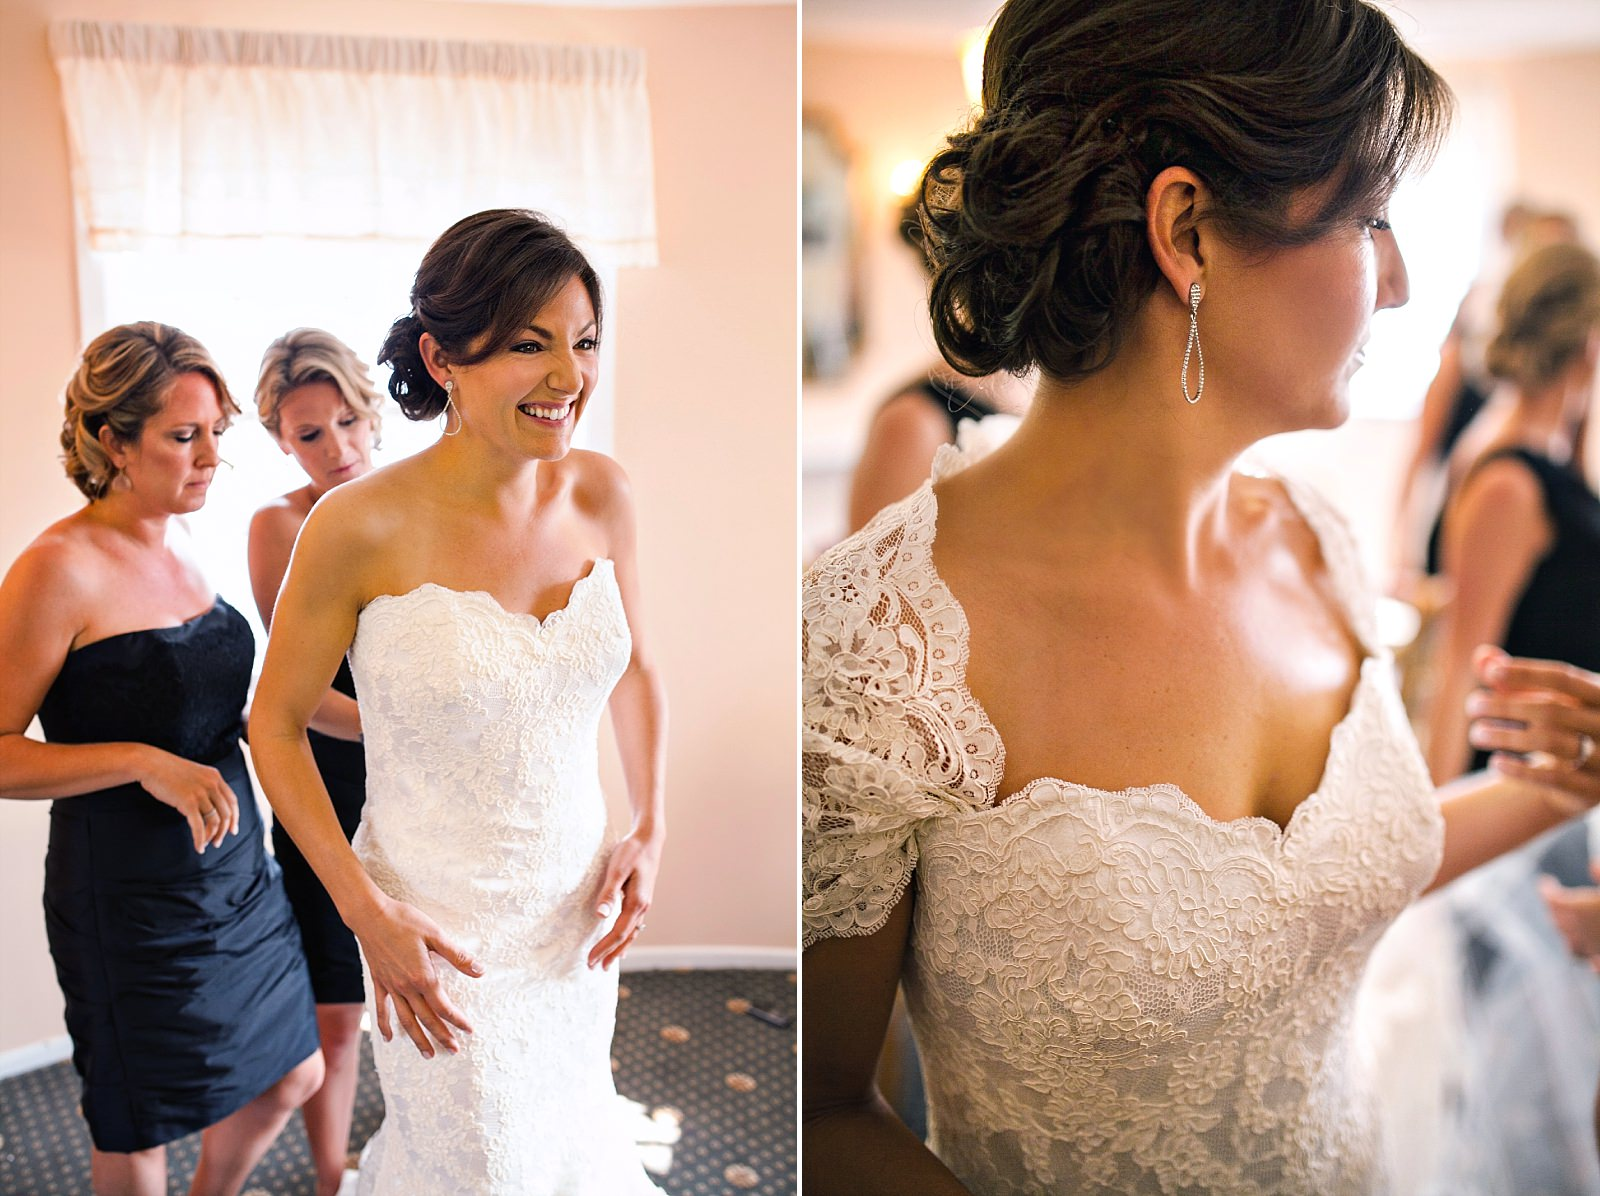 NY_Wedding_Photographer_KaJo_09.jpg